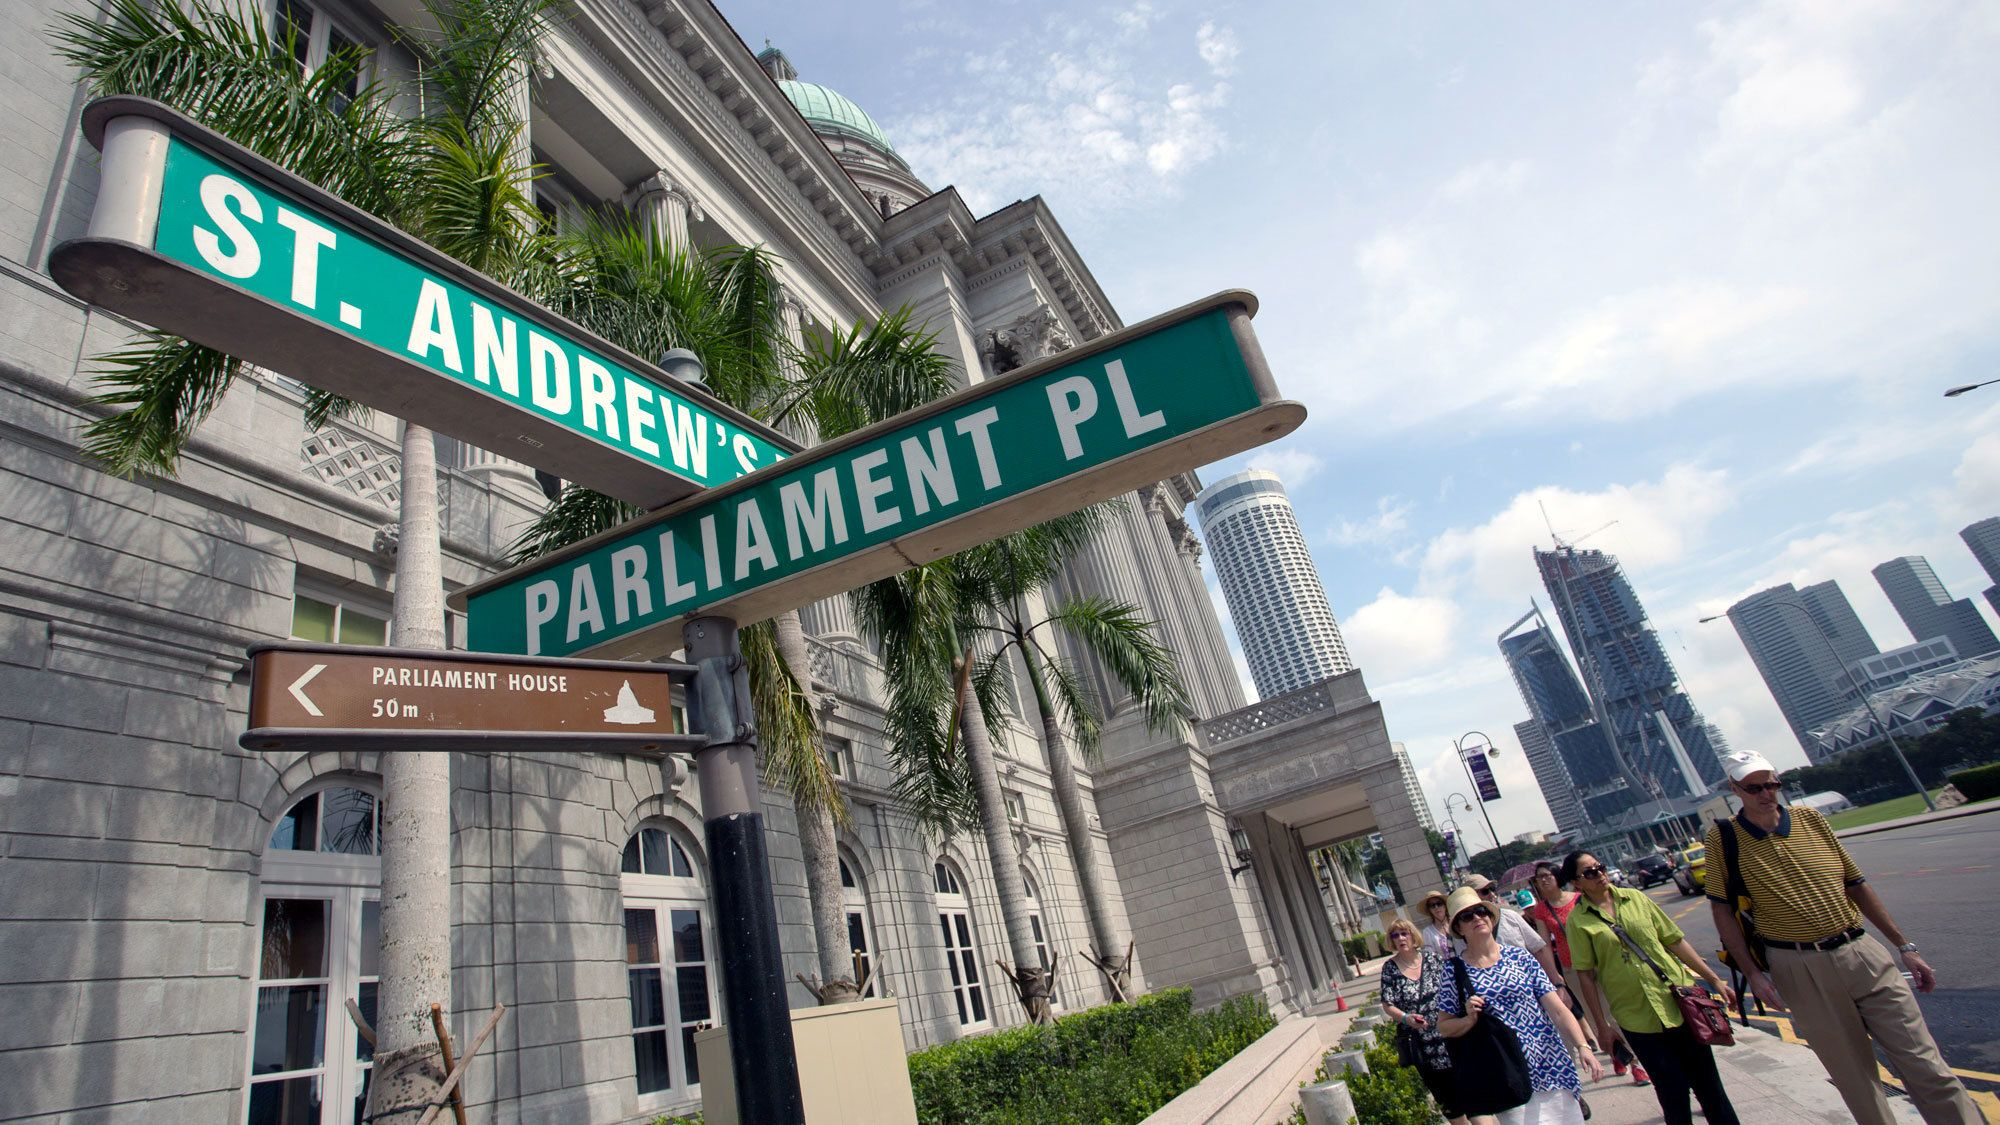 Street signs on the colonial tour in singapore